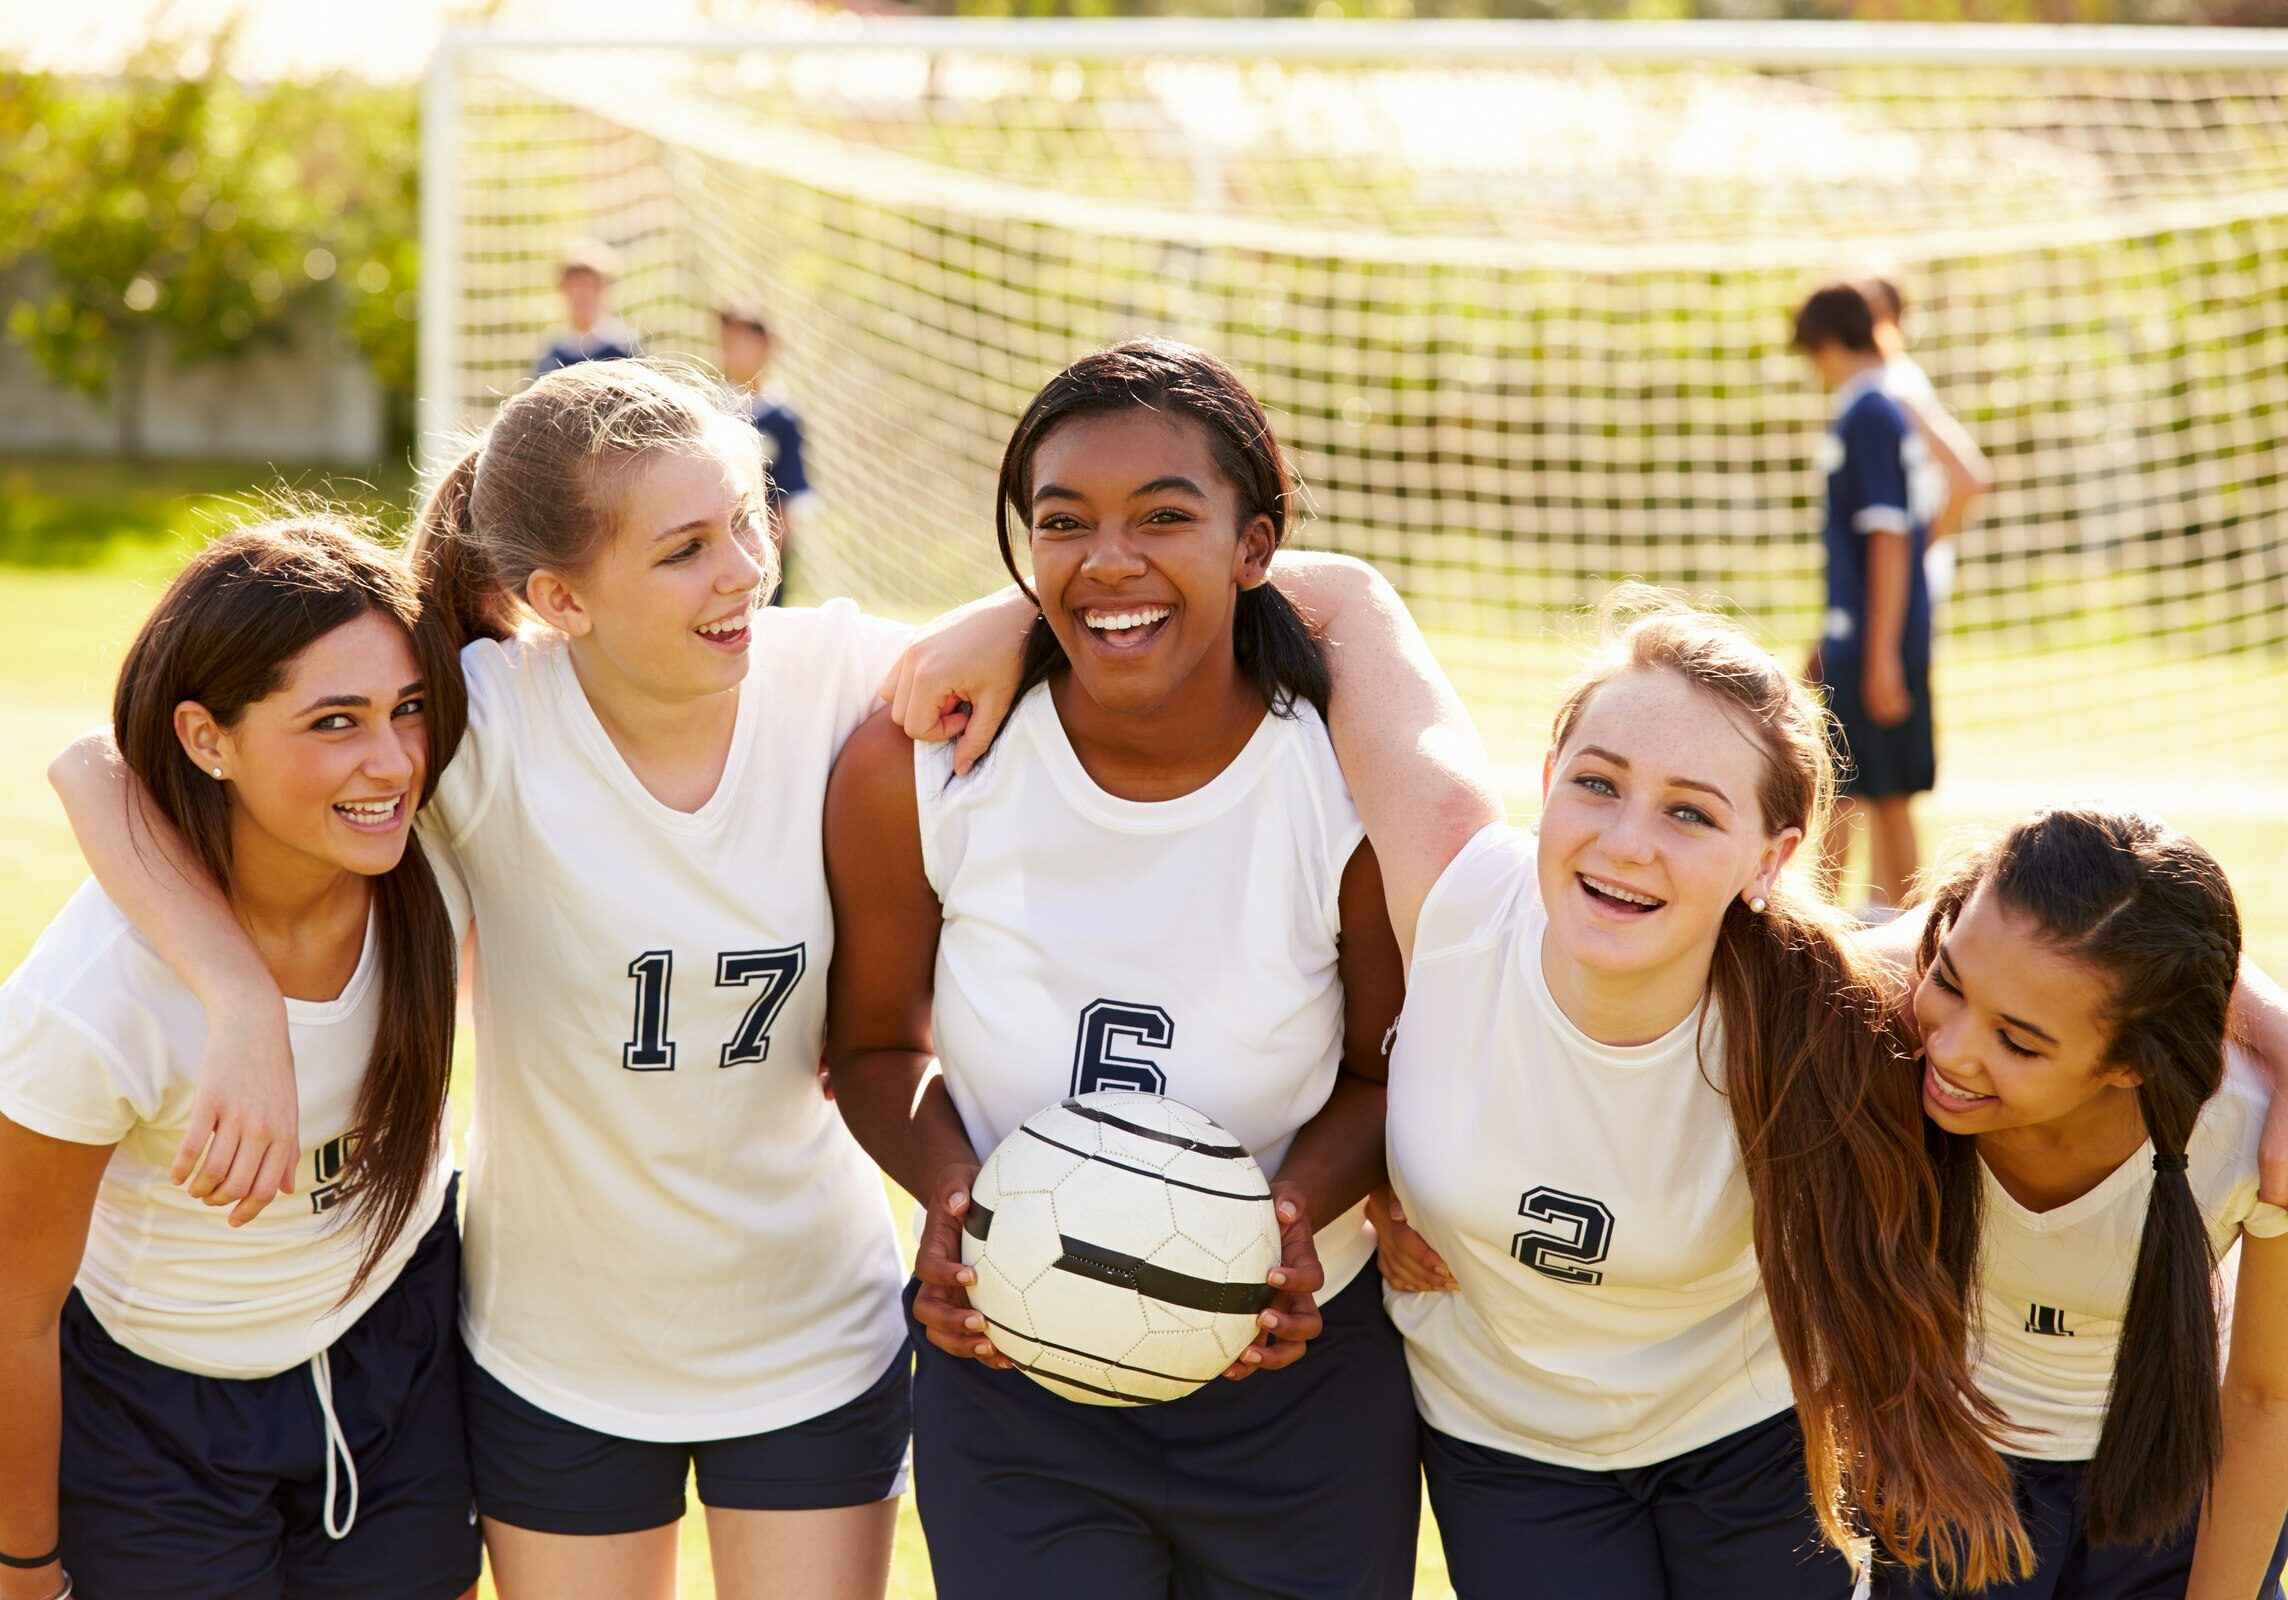 Members Of Female High School Soccer Team Smiling To Camera